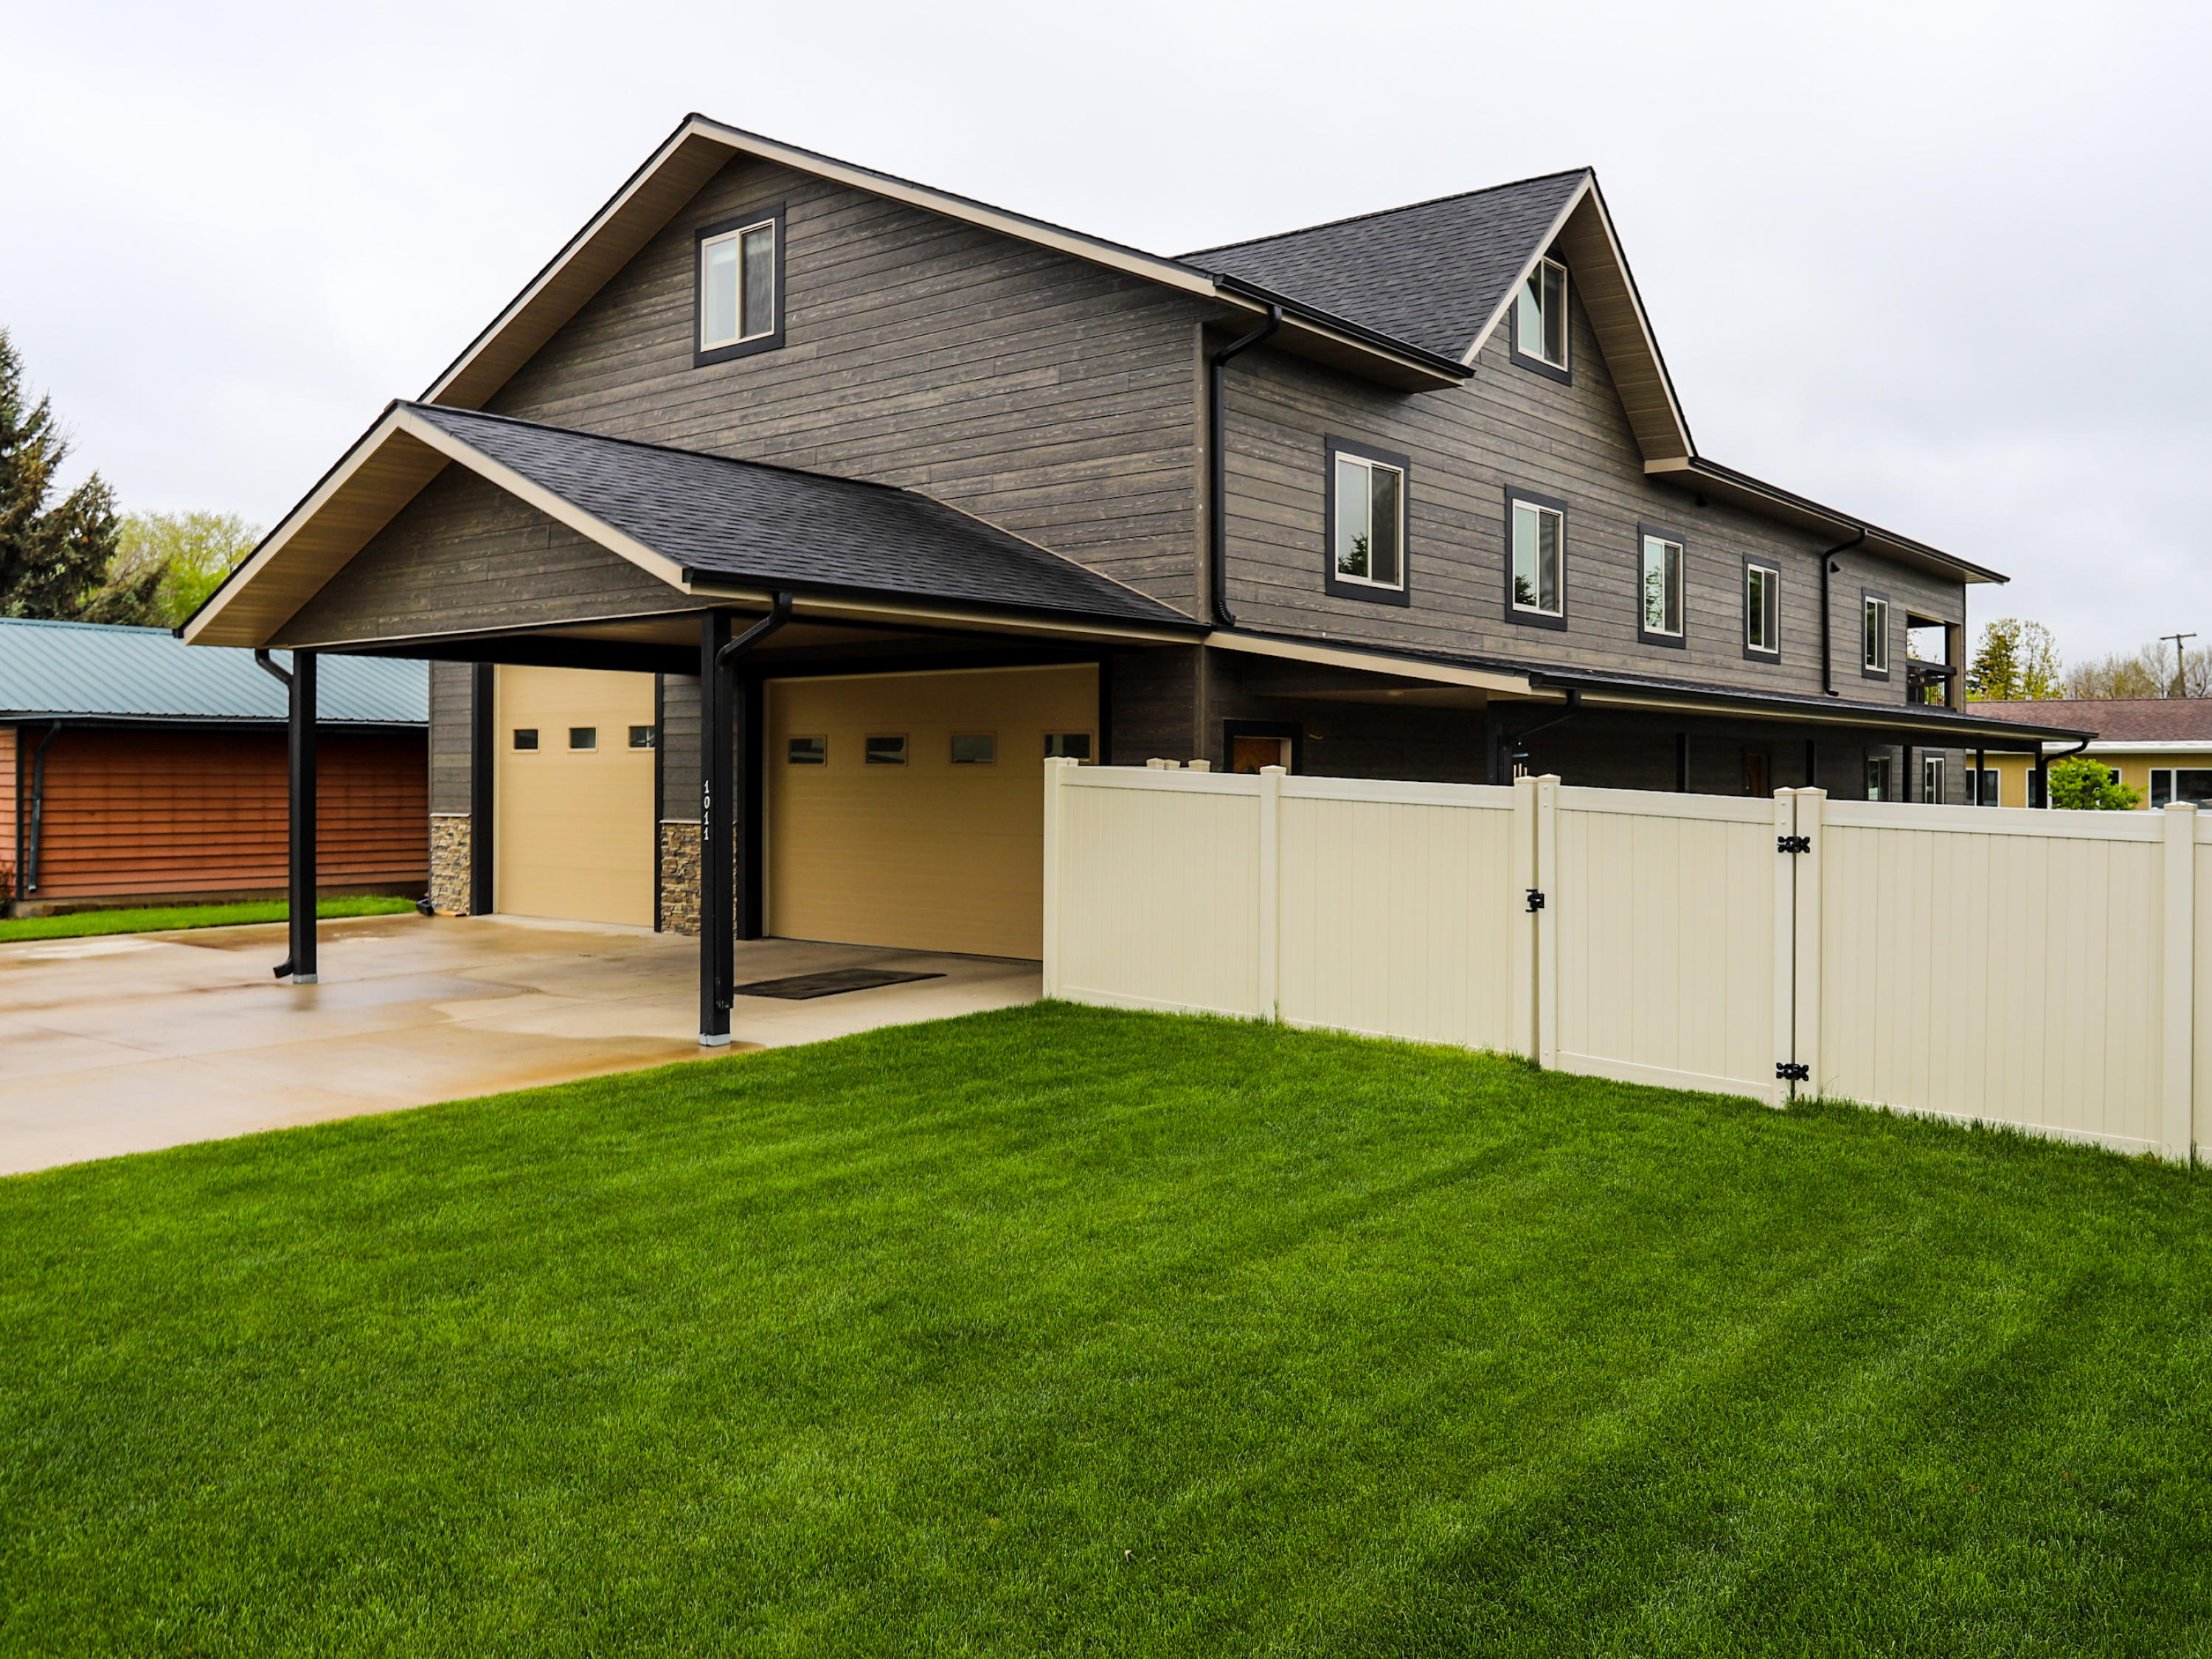 Built in 2018 this home is ready for its new owners. This one of a kind 3 year old home features 4 bedrooms, 3 full baths, & boasts over 3,000sqft. of living space. Enjoy the privacy of the master bedroom located on its own floor with its own en-suite bathroom & walk in closets. The main living area is accompanied by enormous vaulted ceilings, a wide open concept with a modern design, and a beautiful walk out patio. Featured on the main floor is a large bedroom with its own bathroom, walk in closet, & complete privacy from the rest of the house. The best part it has an extremely large attached garage 40x40x16ft along with a second garage in the back measured at 20x20x10ft. This is a must see! Call Ambyr Rain Kleinholz at 4067812003 or your real estate professional for a showing.